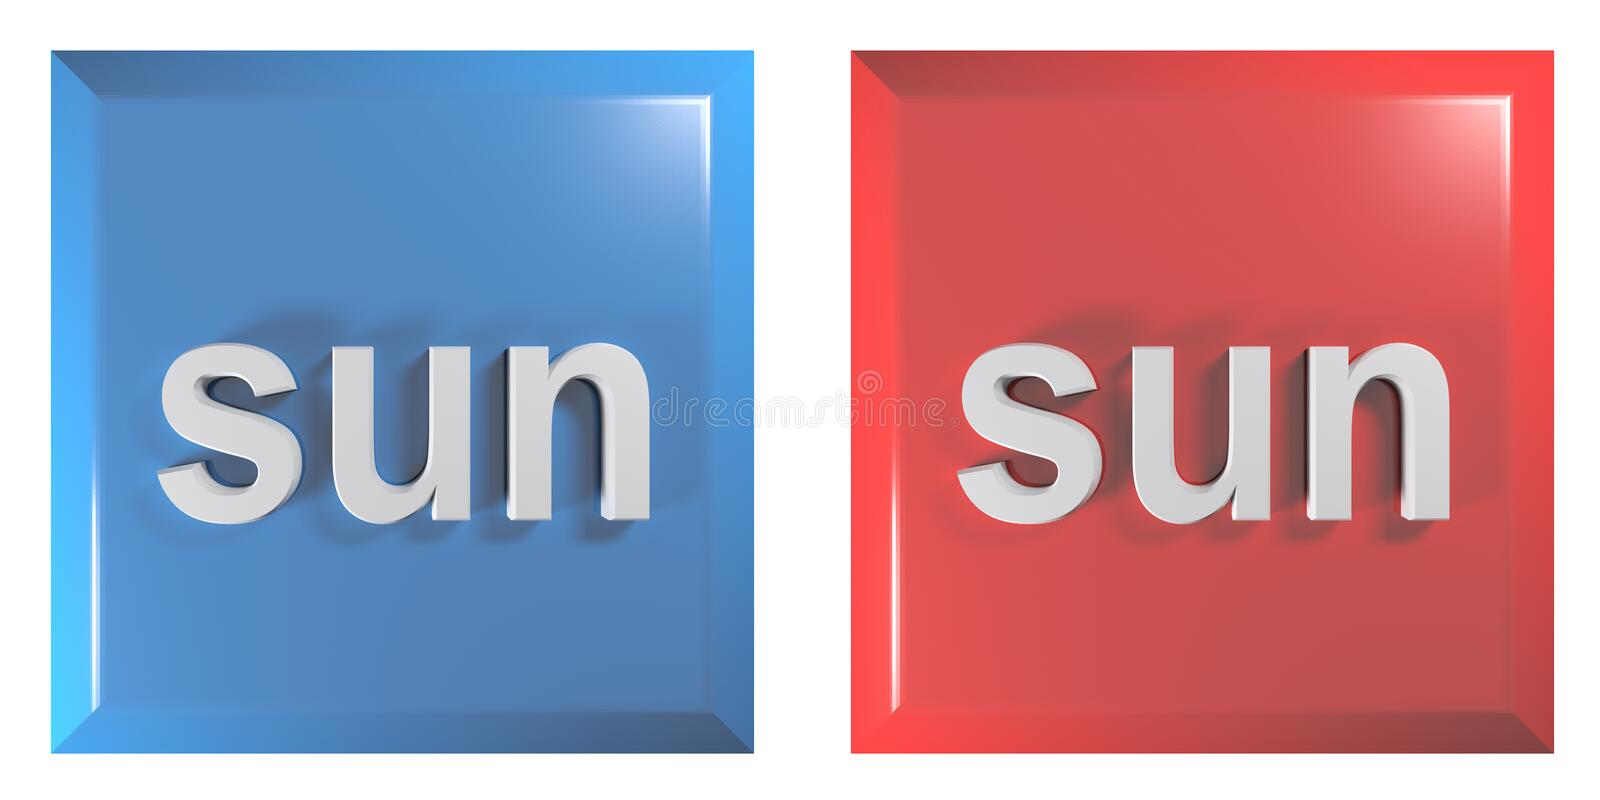 Blue and red couple of square push buttons SUNDAY - 3D rendering illustration. A couple of square push buttons, blue and red, isolated on white background, with stock illustration